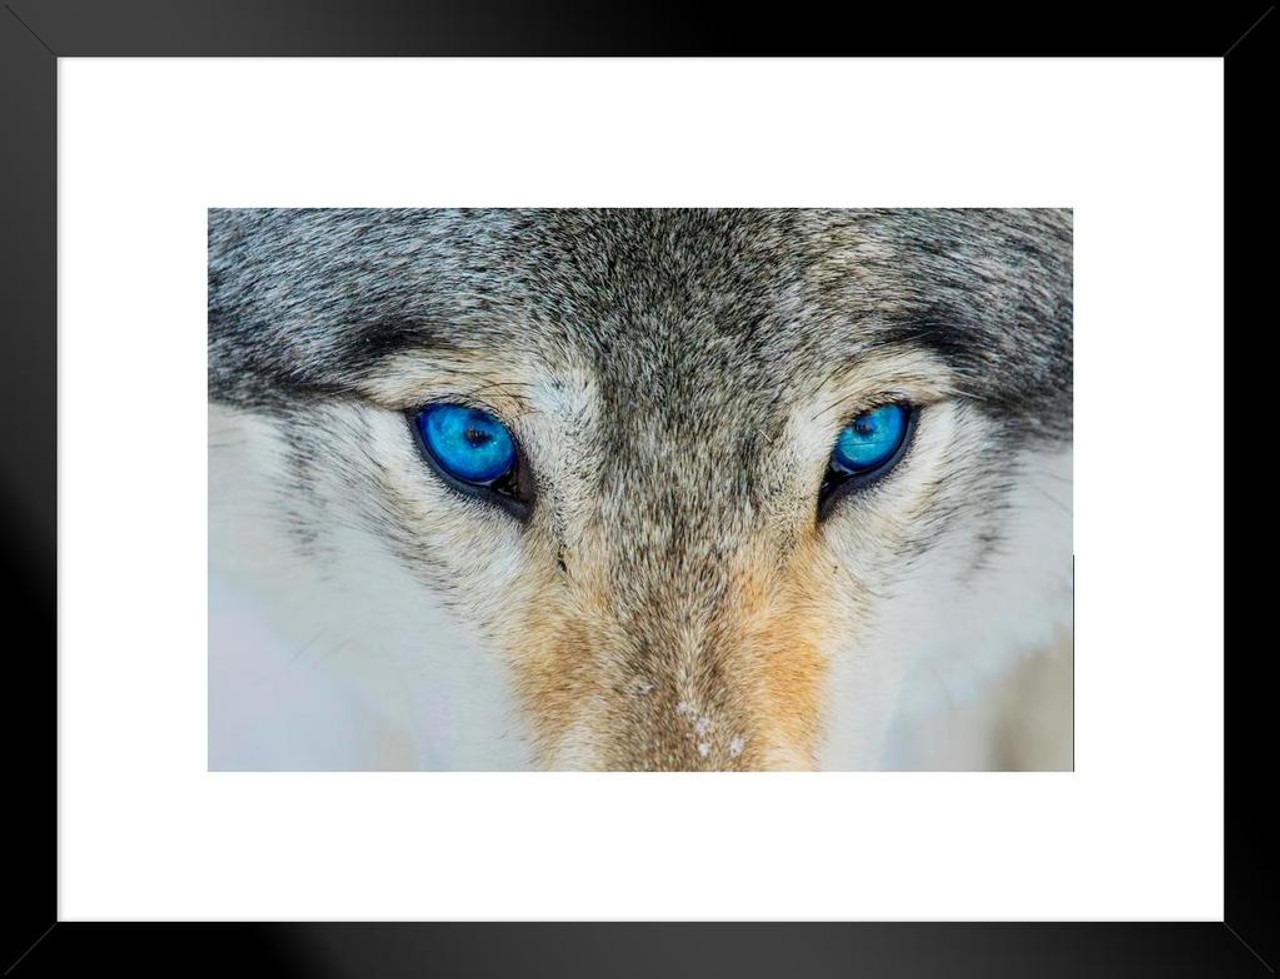 Gray Wolf Bright Blue Eyes Close Up Face Portrait Photo Matted